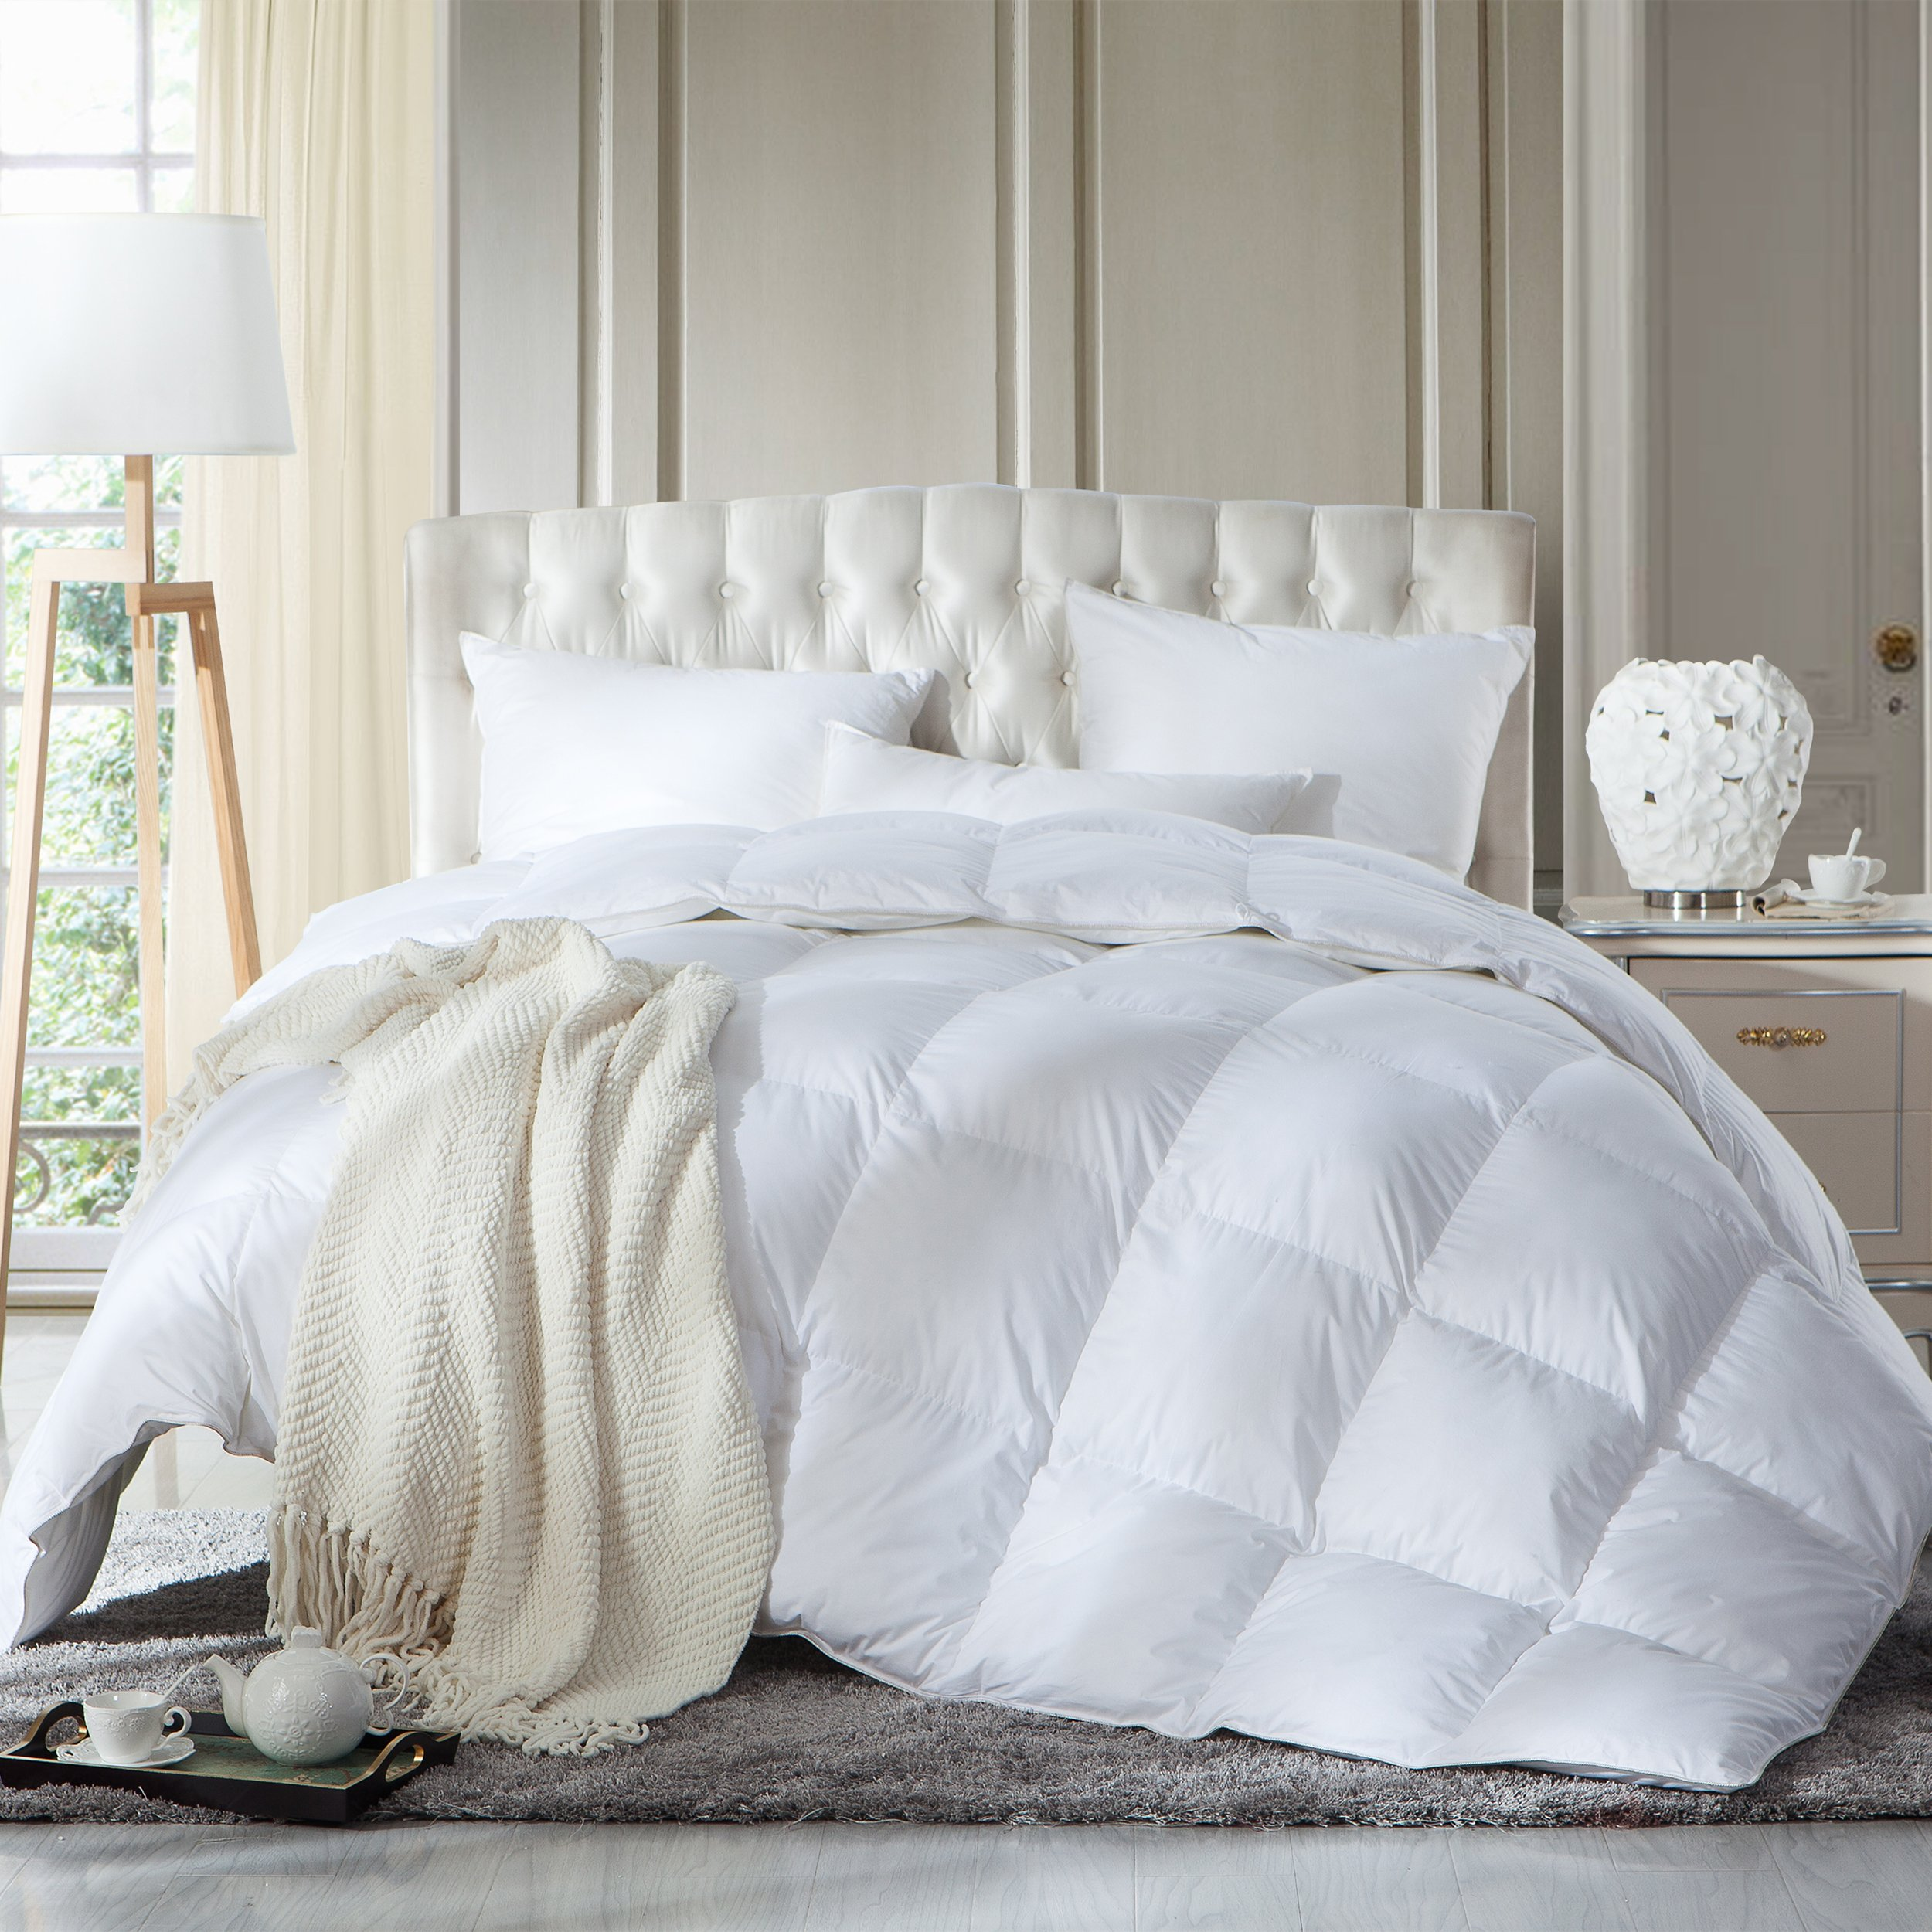 cheap setsf comforter down place bedding best popular thick how cute buy goose a l to white sets bed comforters pretty